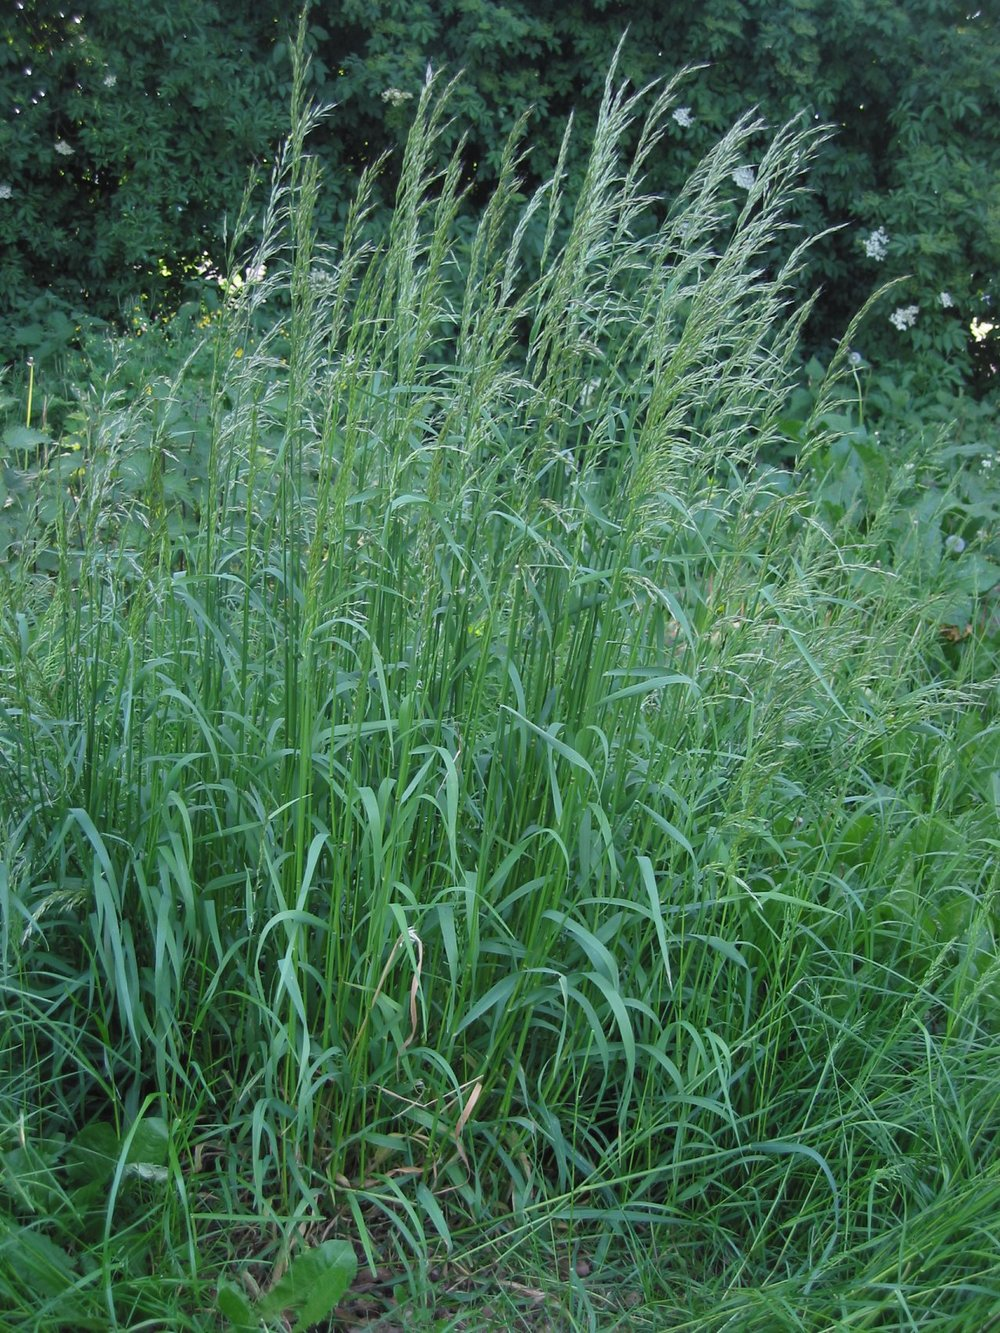 Tall oatgrass (wikepedia.org).